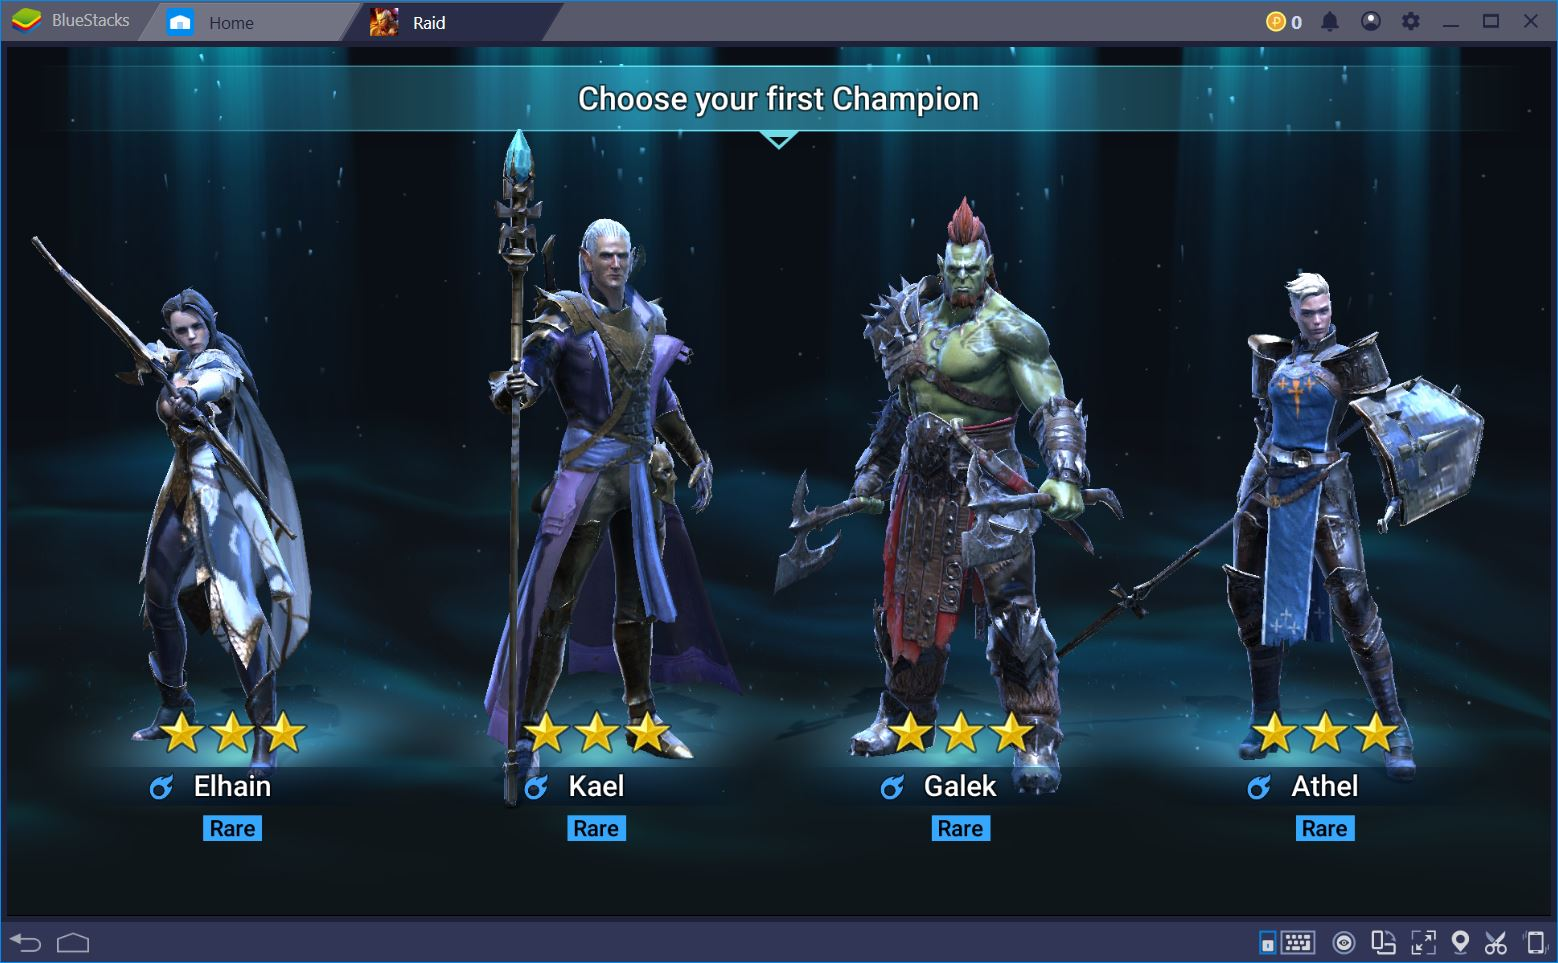 RAID: Shadow Legends – The Best First Champion and Early Game Setup